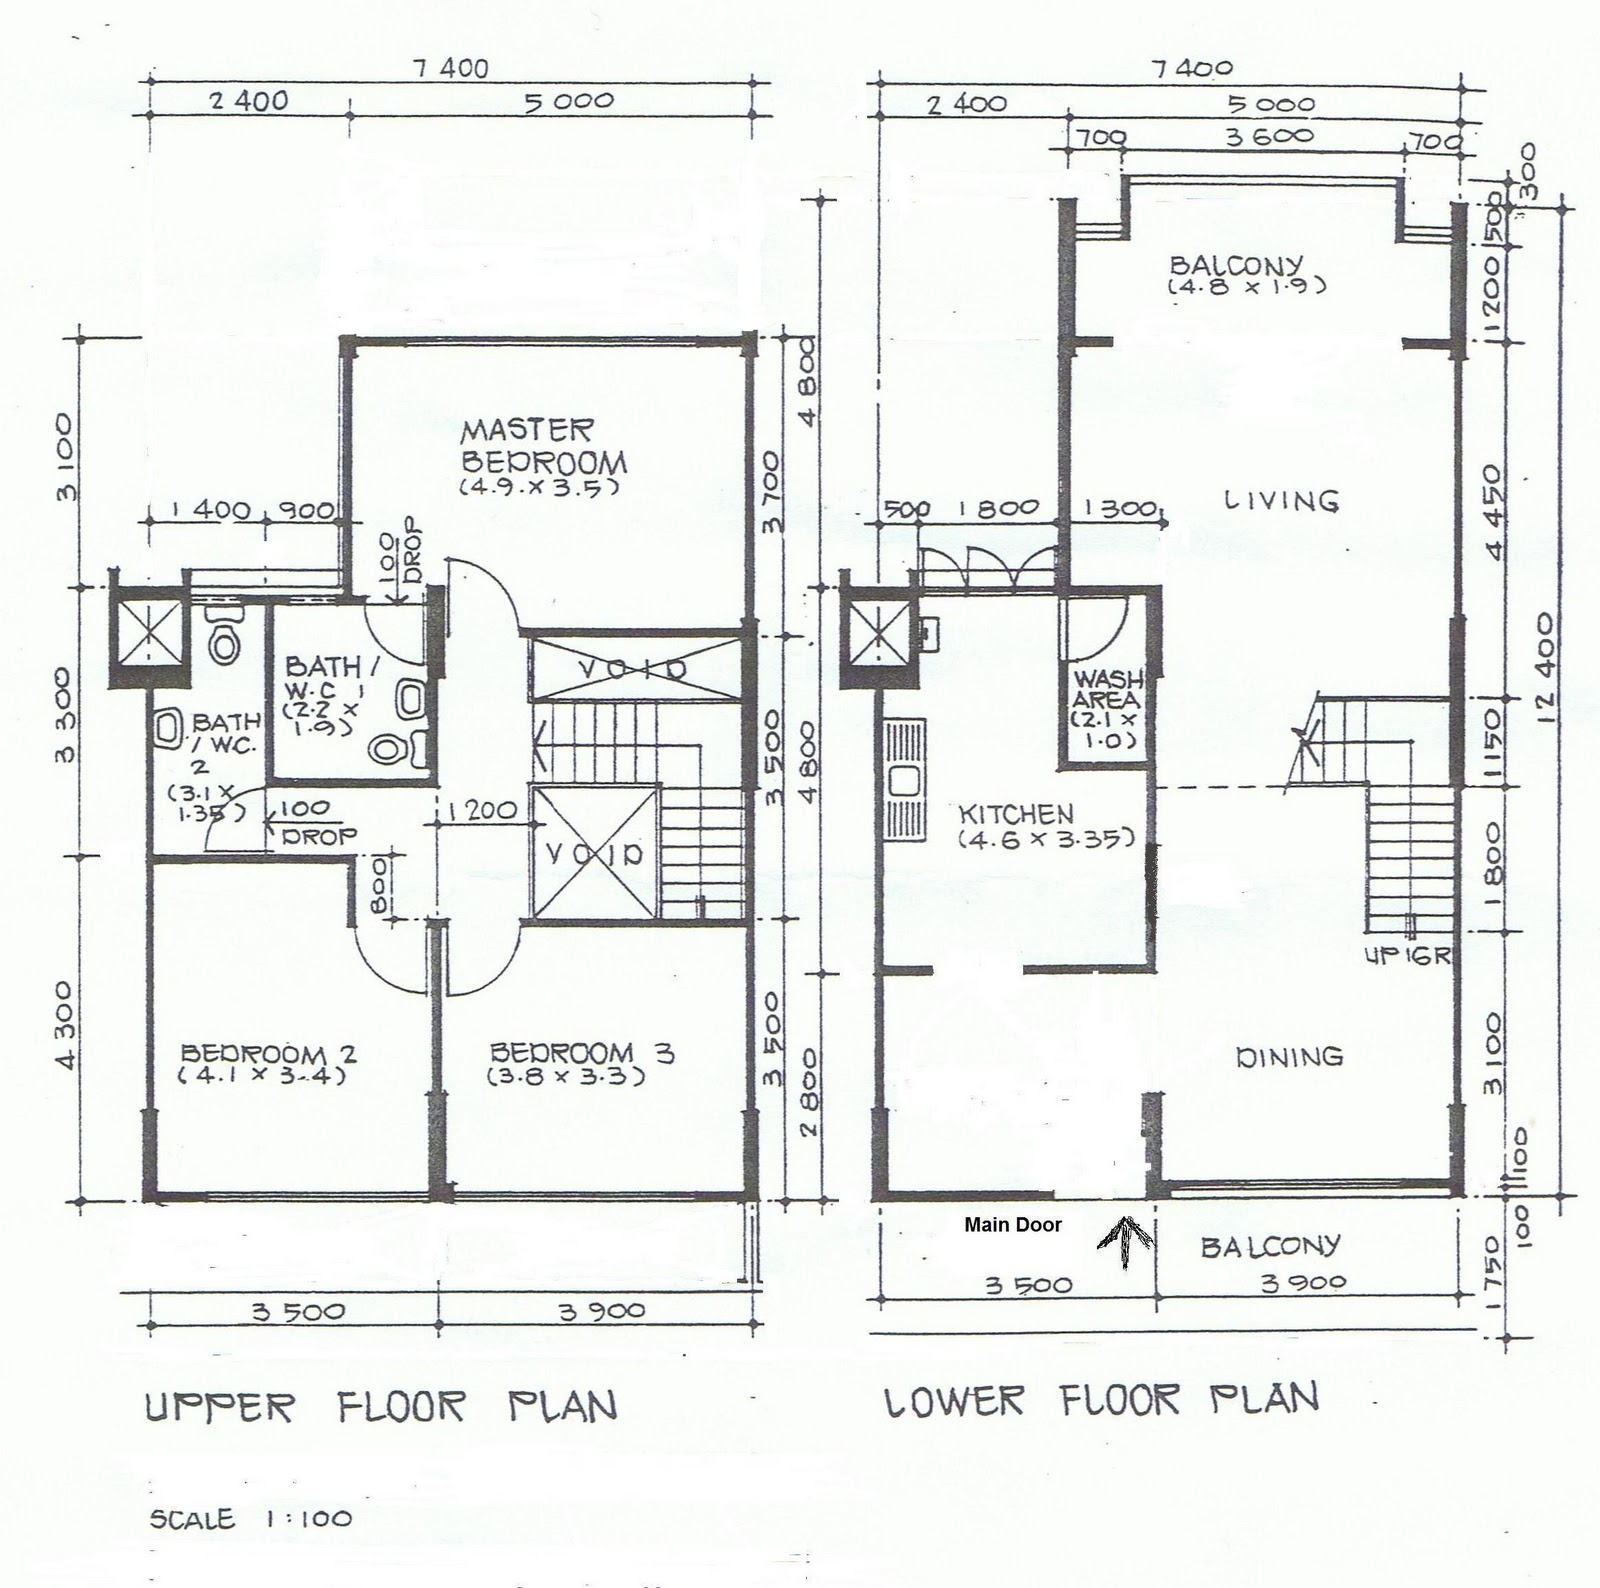 Maisonette house plans three bedroom bungalow house plan for Maisonette house plans